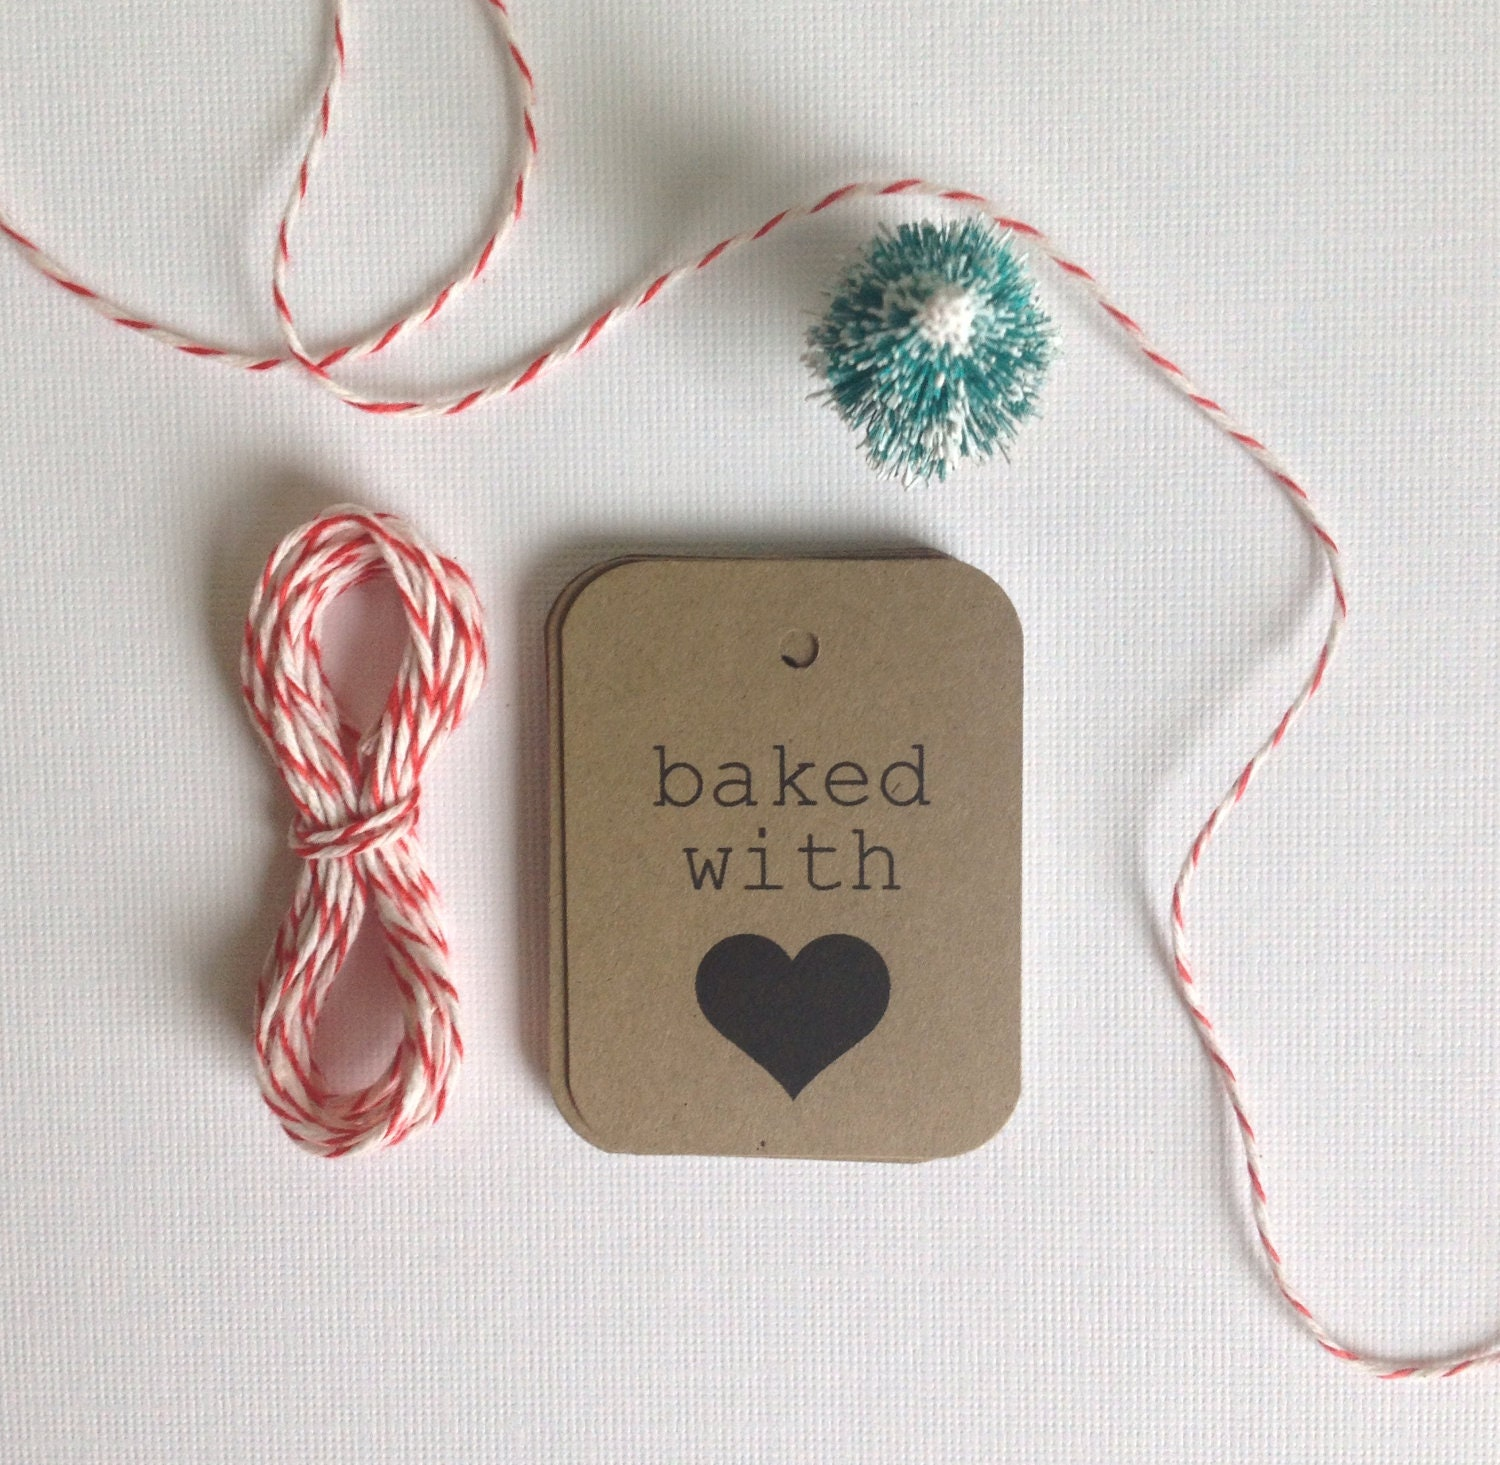 Baked with love tags- gift tags - heart tags - packaging supplies -